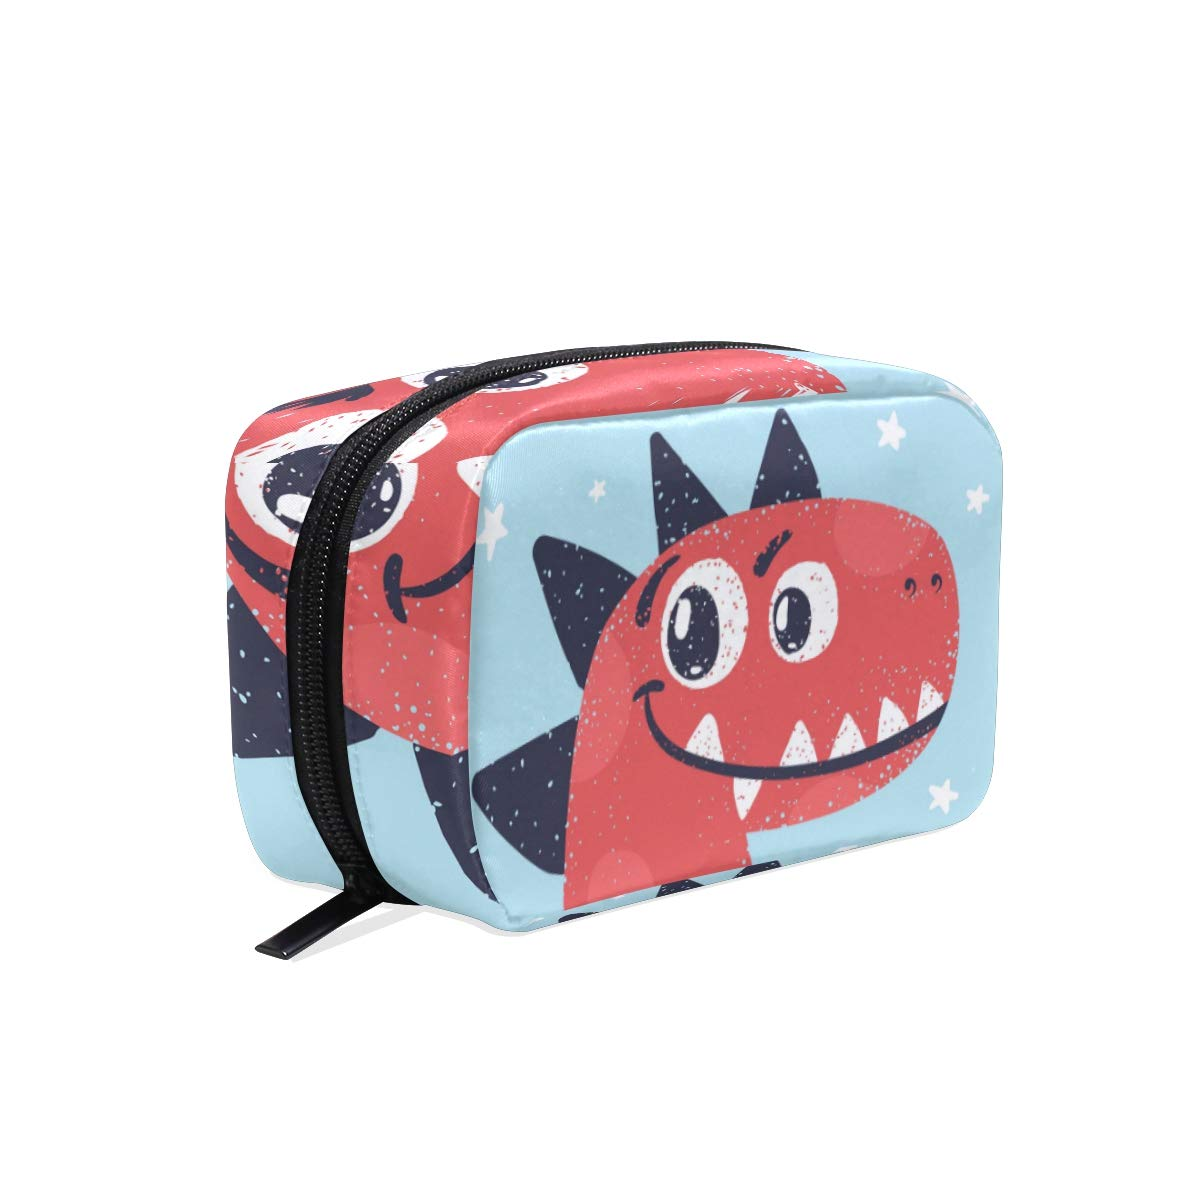 Women's Makeup Cosmetic Bag Cute Dinosaur Makeup Pouch for Travel Cosmetic Pouch Purse(904g)